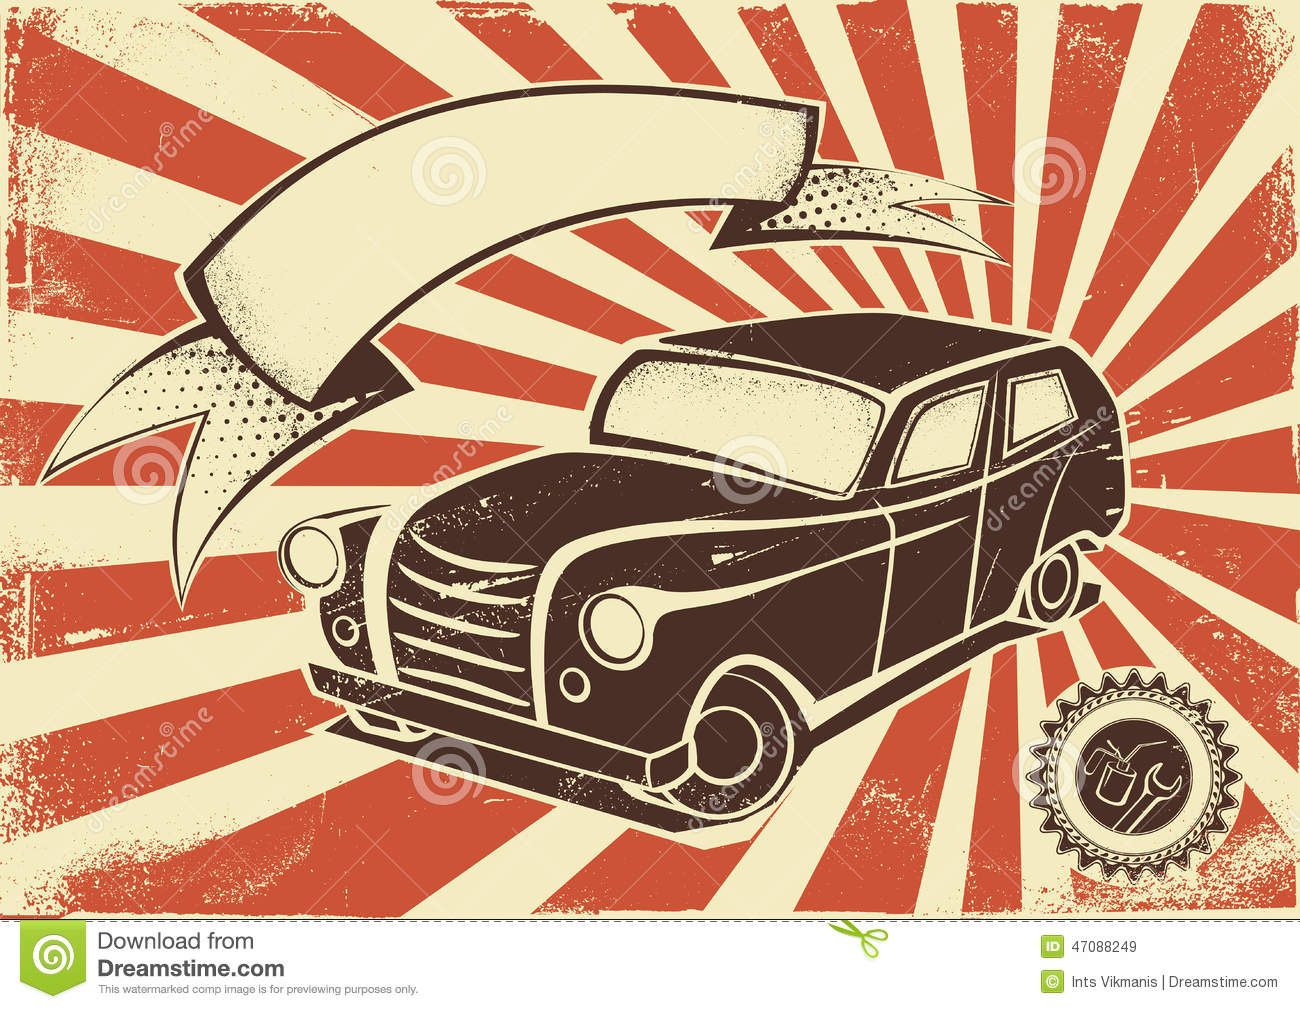 Vintage Car Poster Template Stock Vector - Image: 47088249